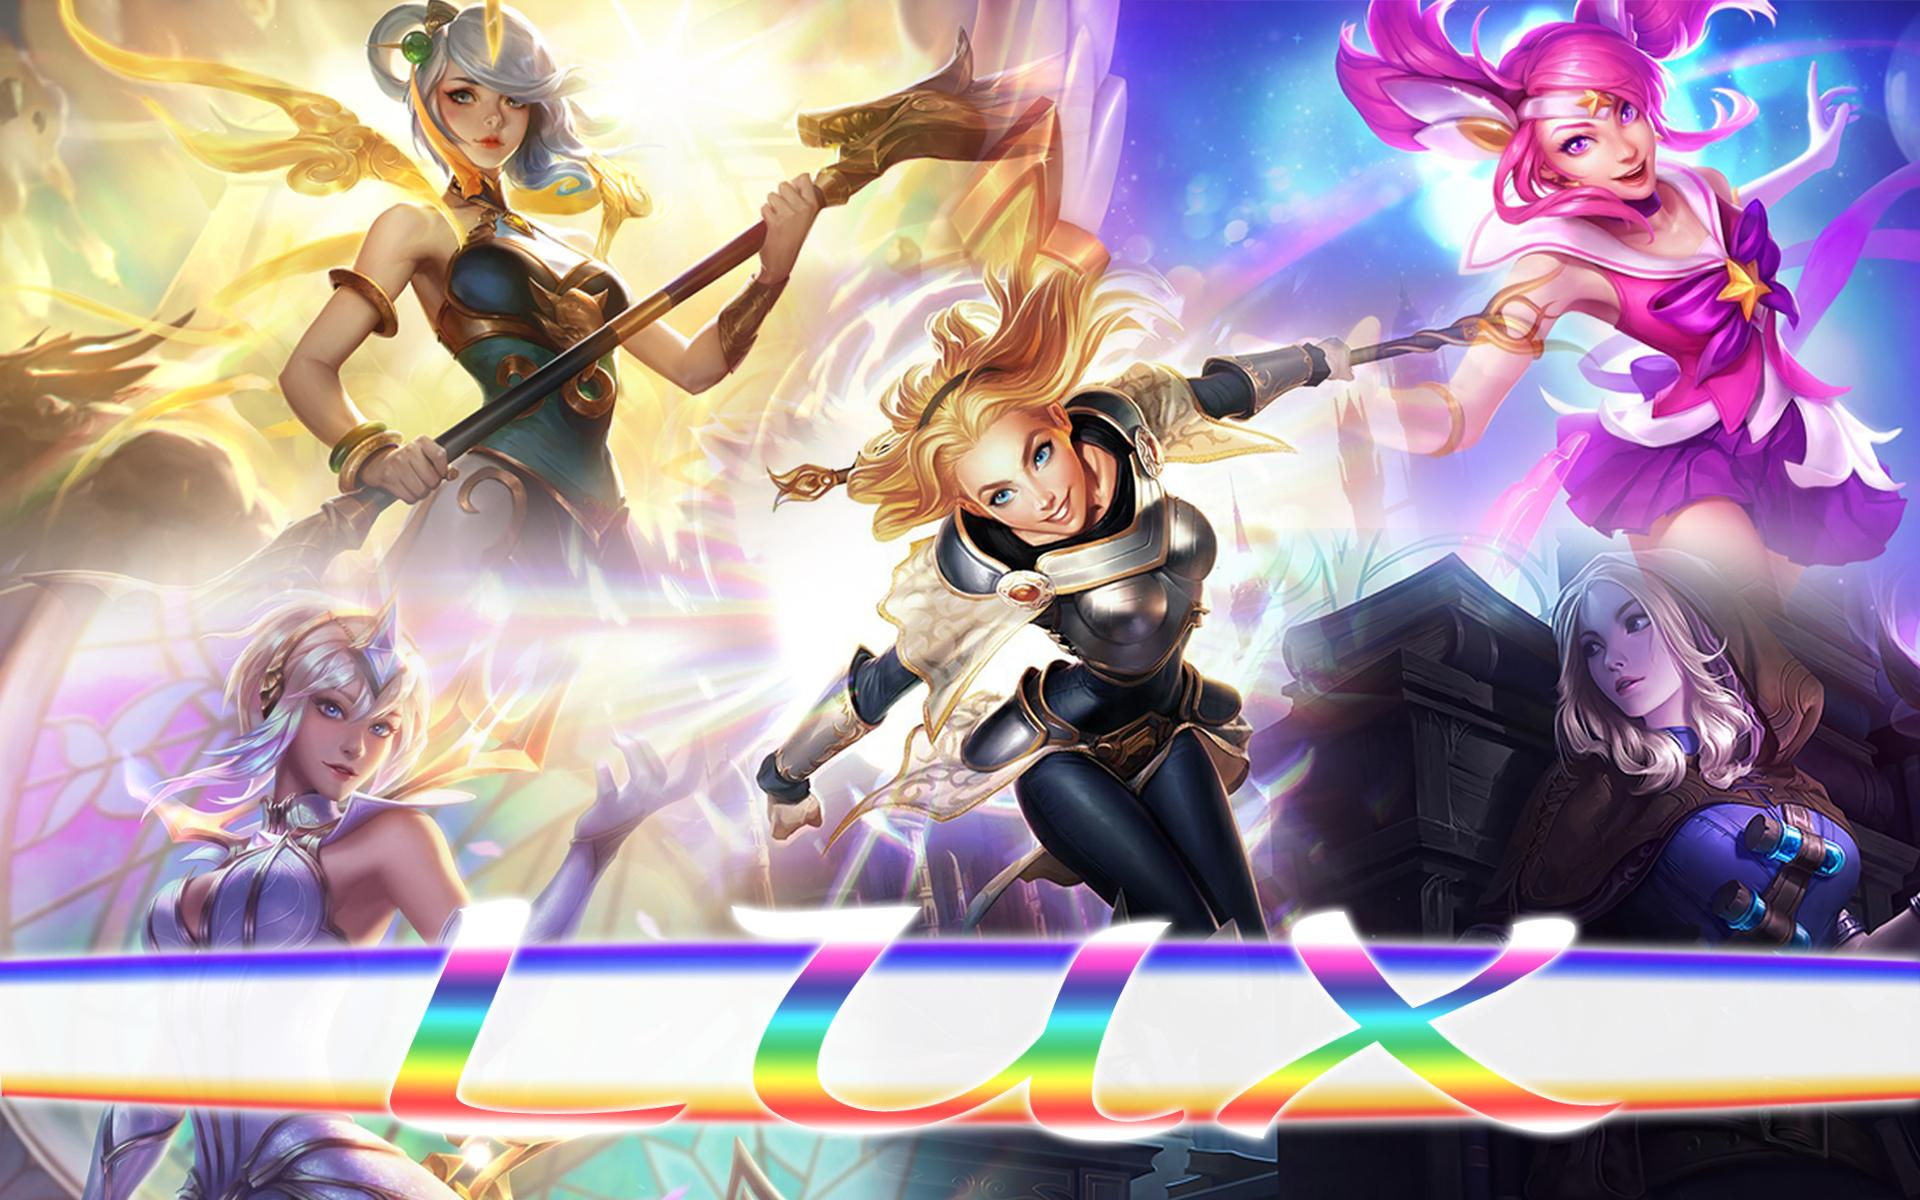 Lux Wallpaper Lux League Of Legends Art 313915 Hd Wallpaper